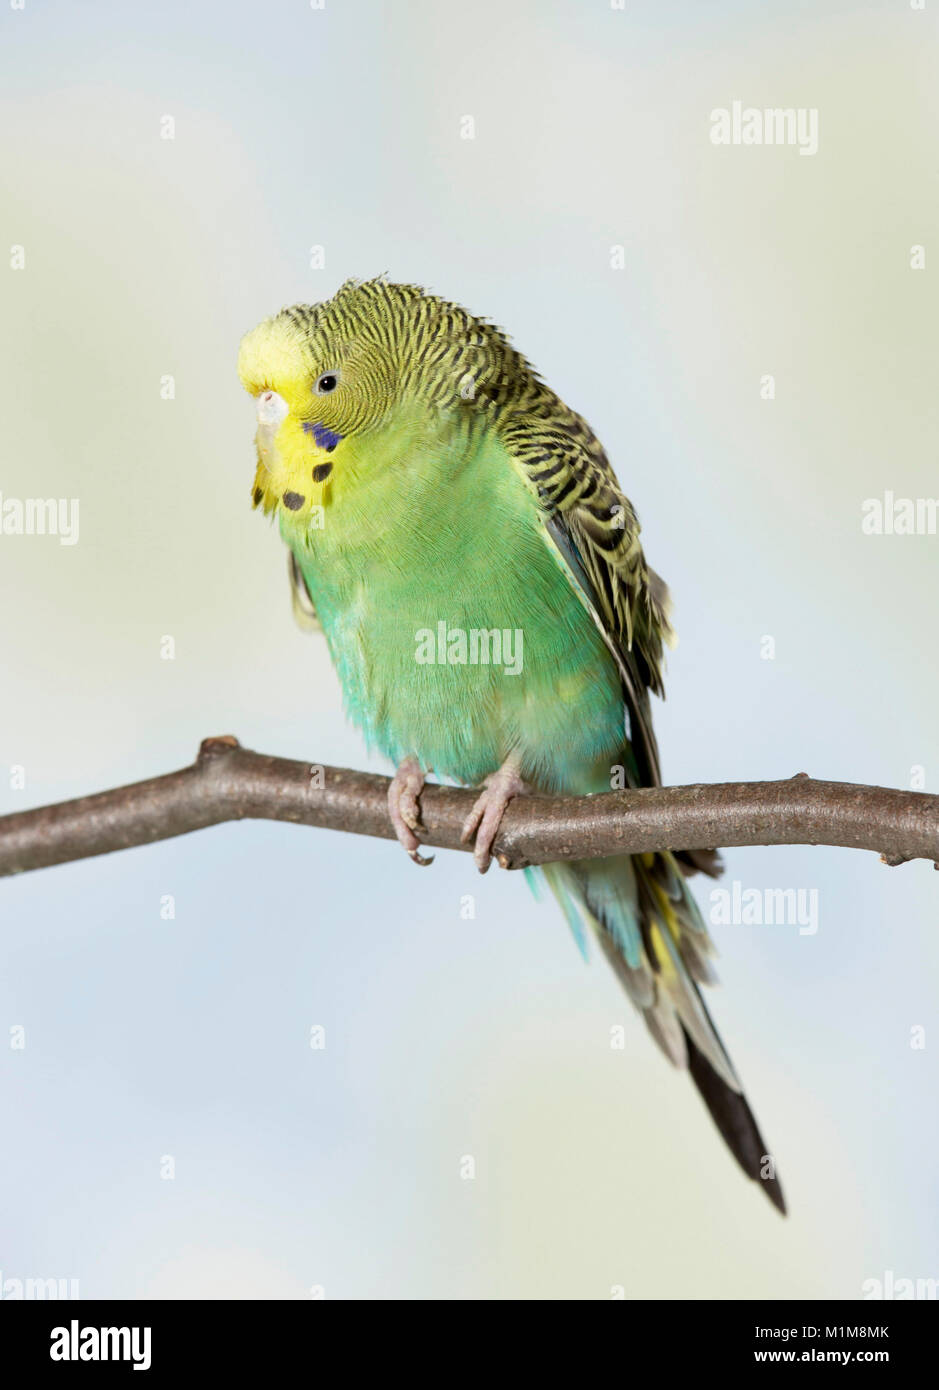 Budgerigar, Budgie (Melopsittacus undulatus). Ill bird perched on a twog. Germany - Stock Image